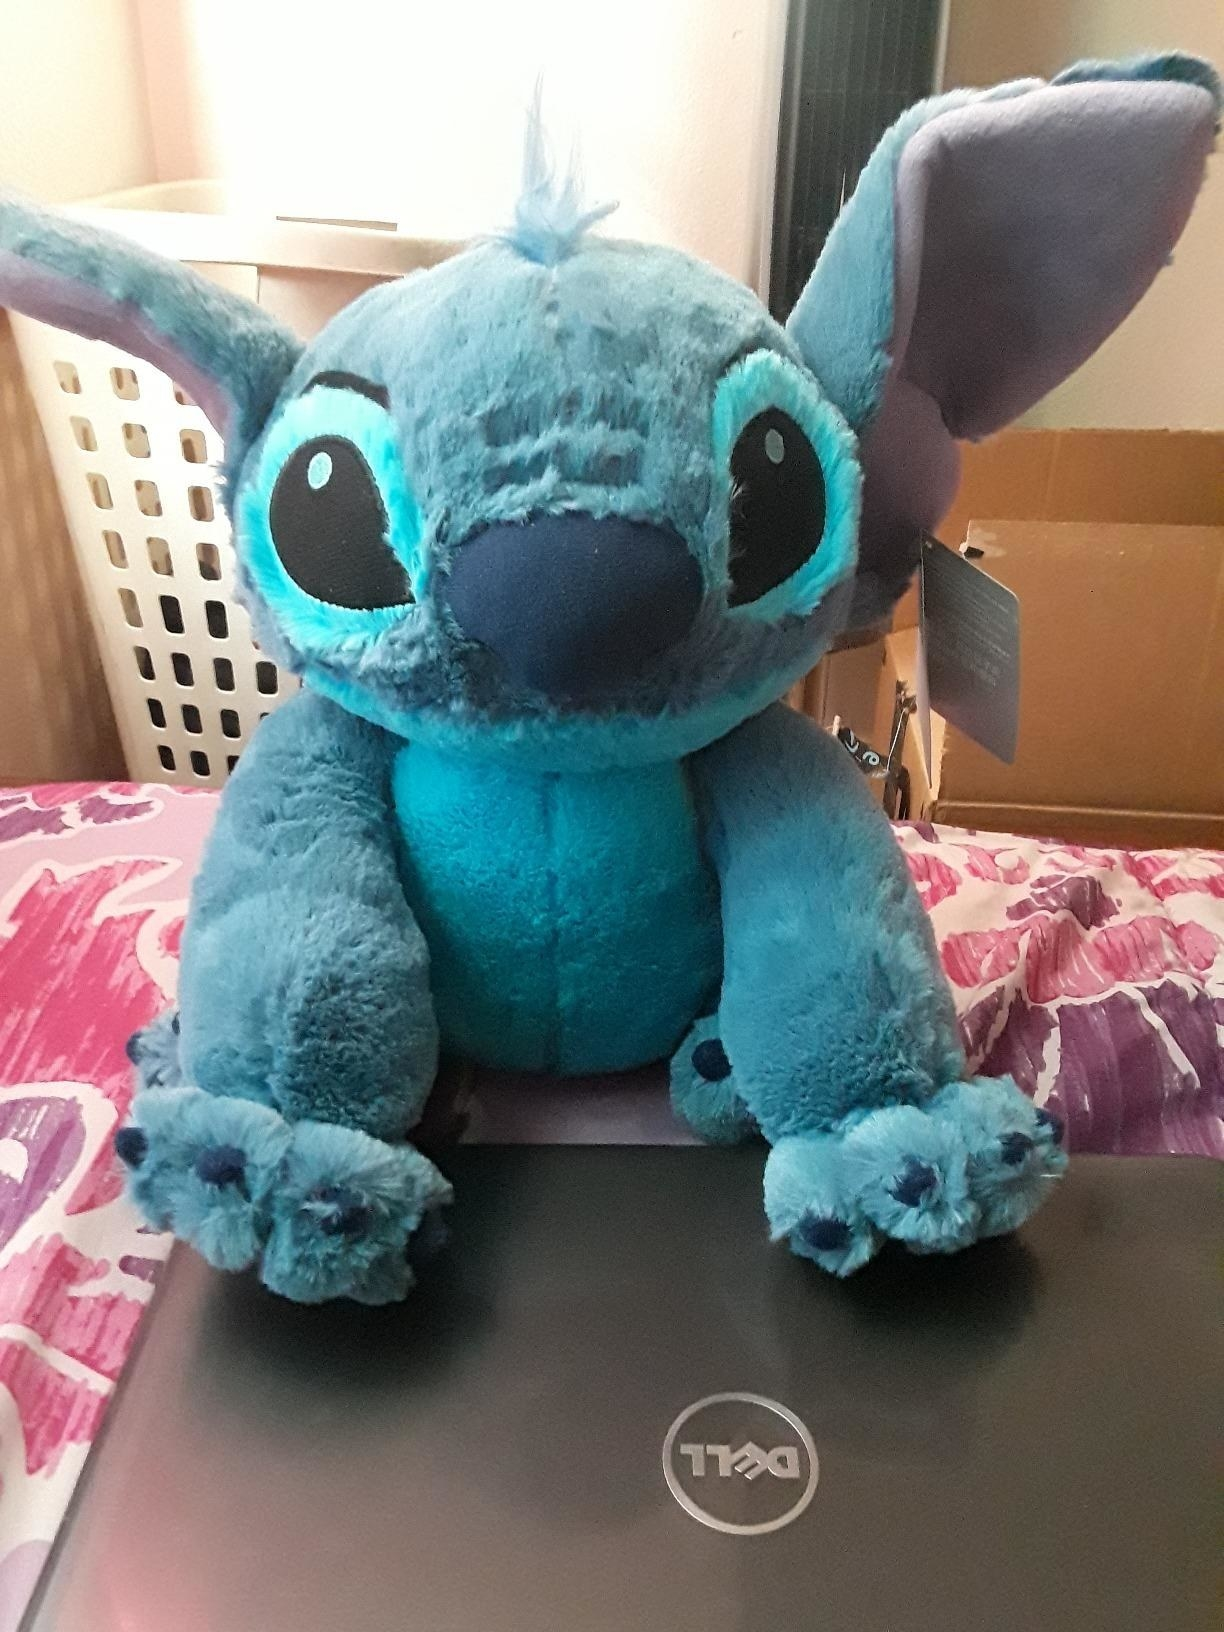 a reviewer's plush stitch doll